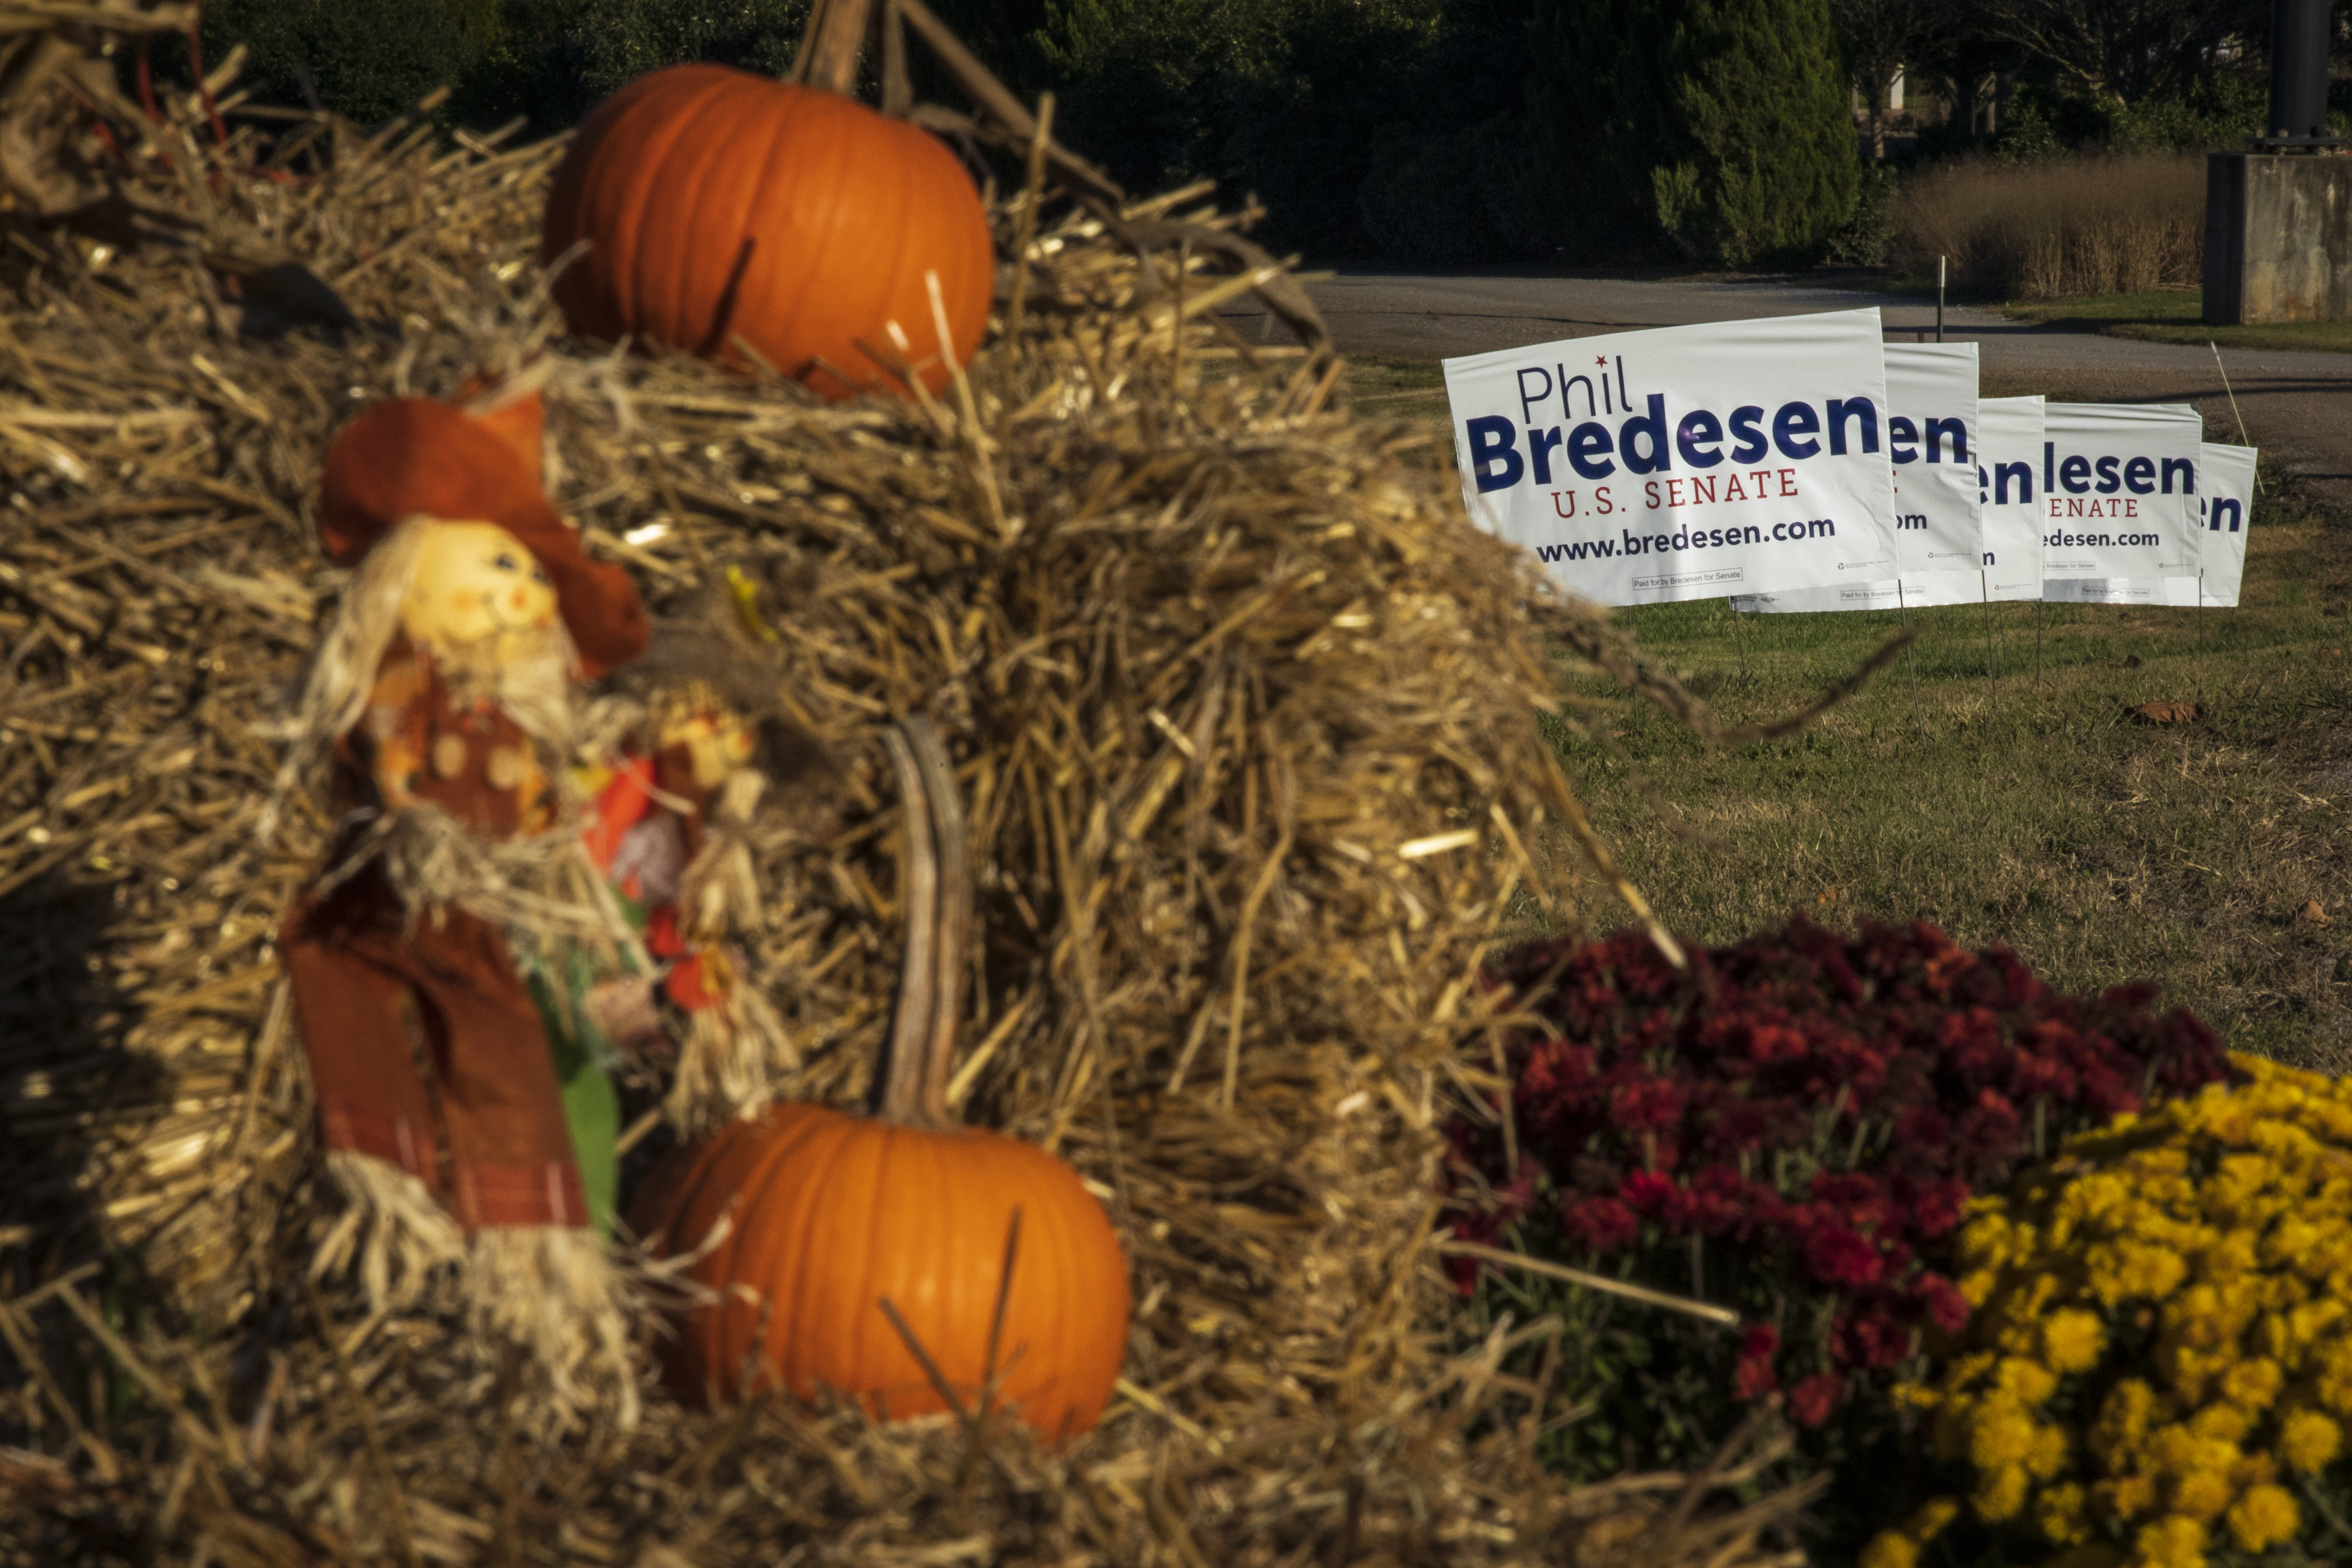 MURFREESBORO, TN - OCTOBER 29: Halloween decorations and signs supporting Democratic candidate for U.S. Senate Phil Bredesen line the road before a Get-Out-The-Vote rally, October 29, 2018 in Murfreesboro, Tennessee. Bredesen, a former governor of Tennessee, is running in a tight race against U.S. Rep. Marsha Blackburn (R-TN) to fill the seat left open by Sen. Bob Corker (R-TN), who opted not to seek reelection. (Photo by Drew Angerer/Getty Images)